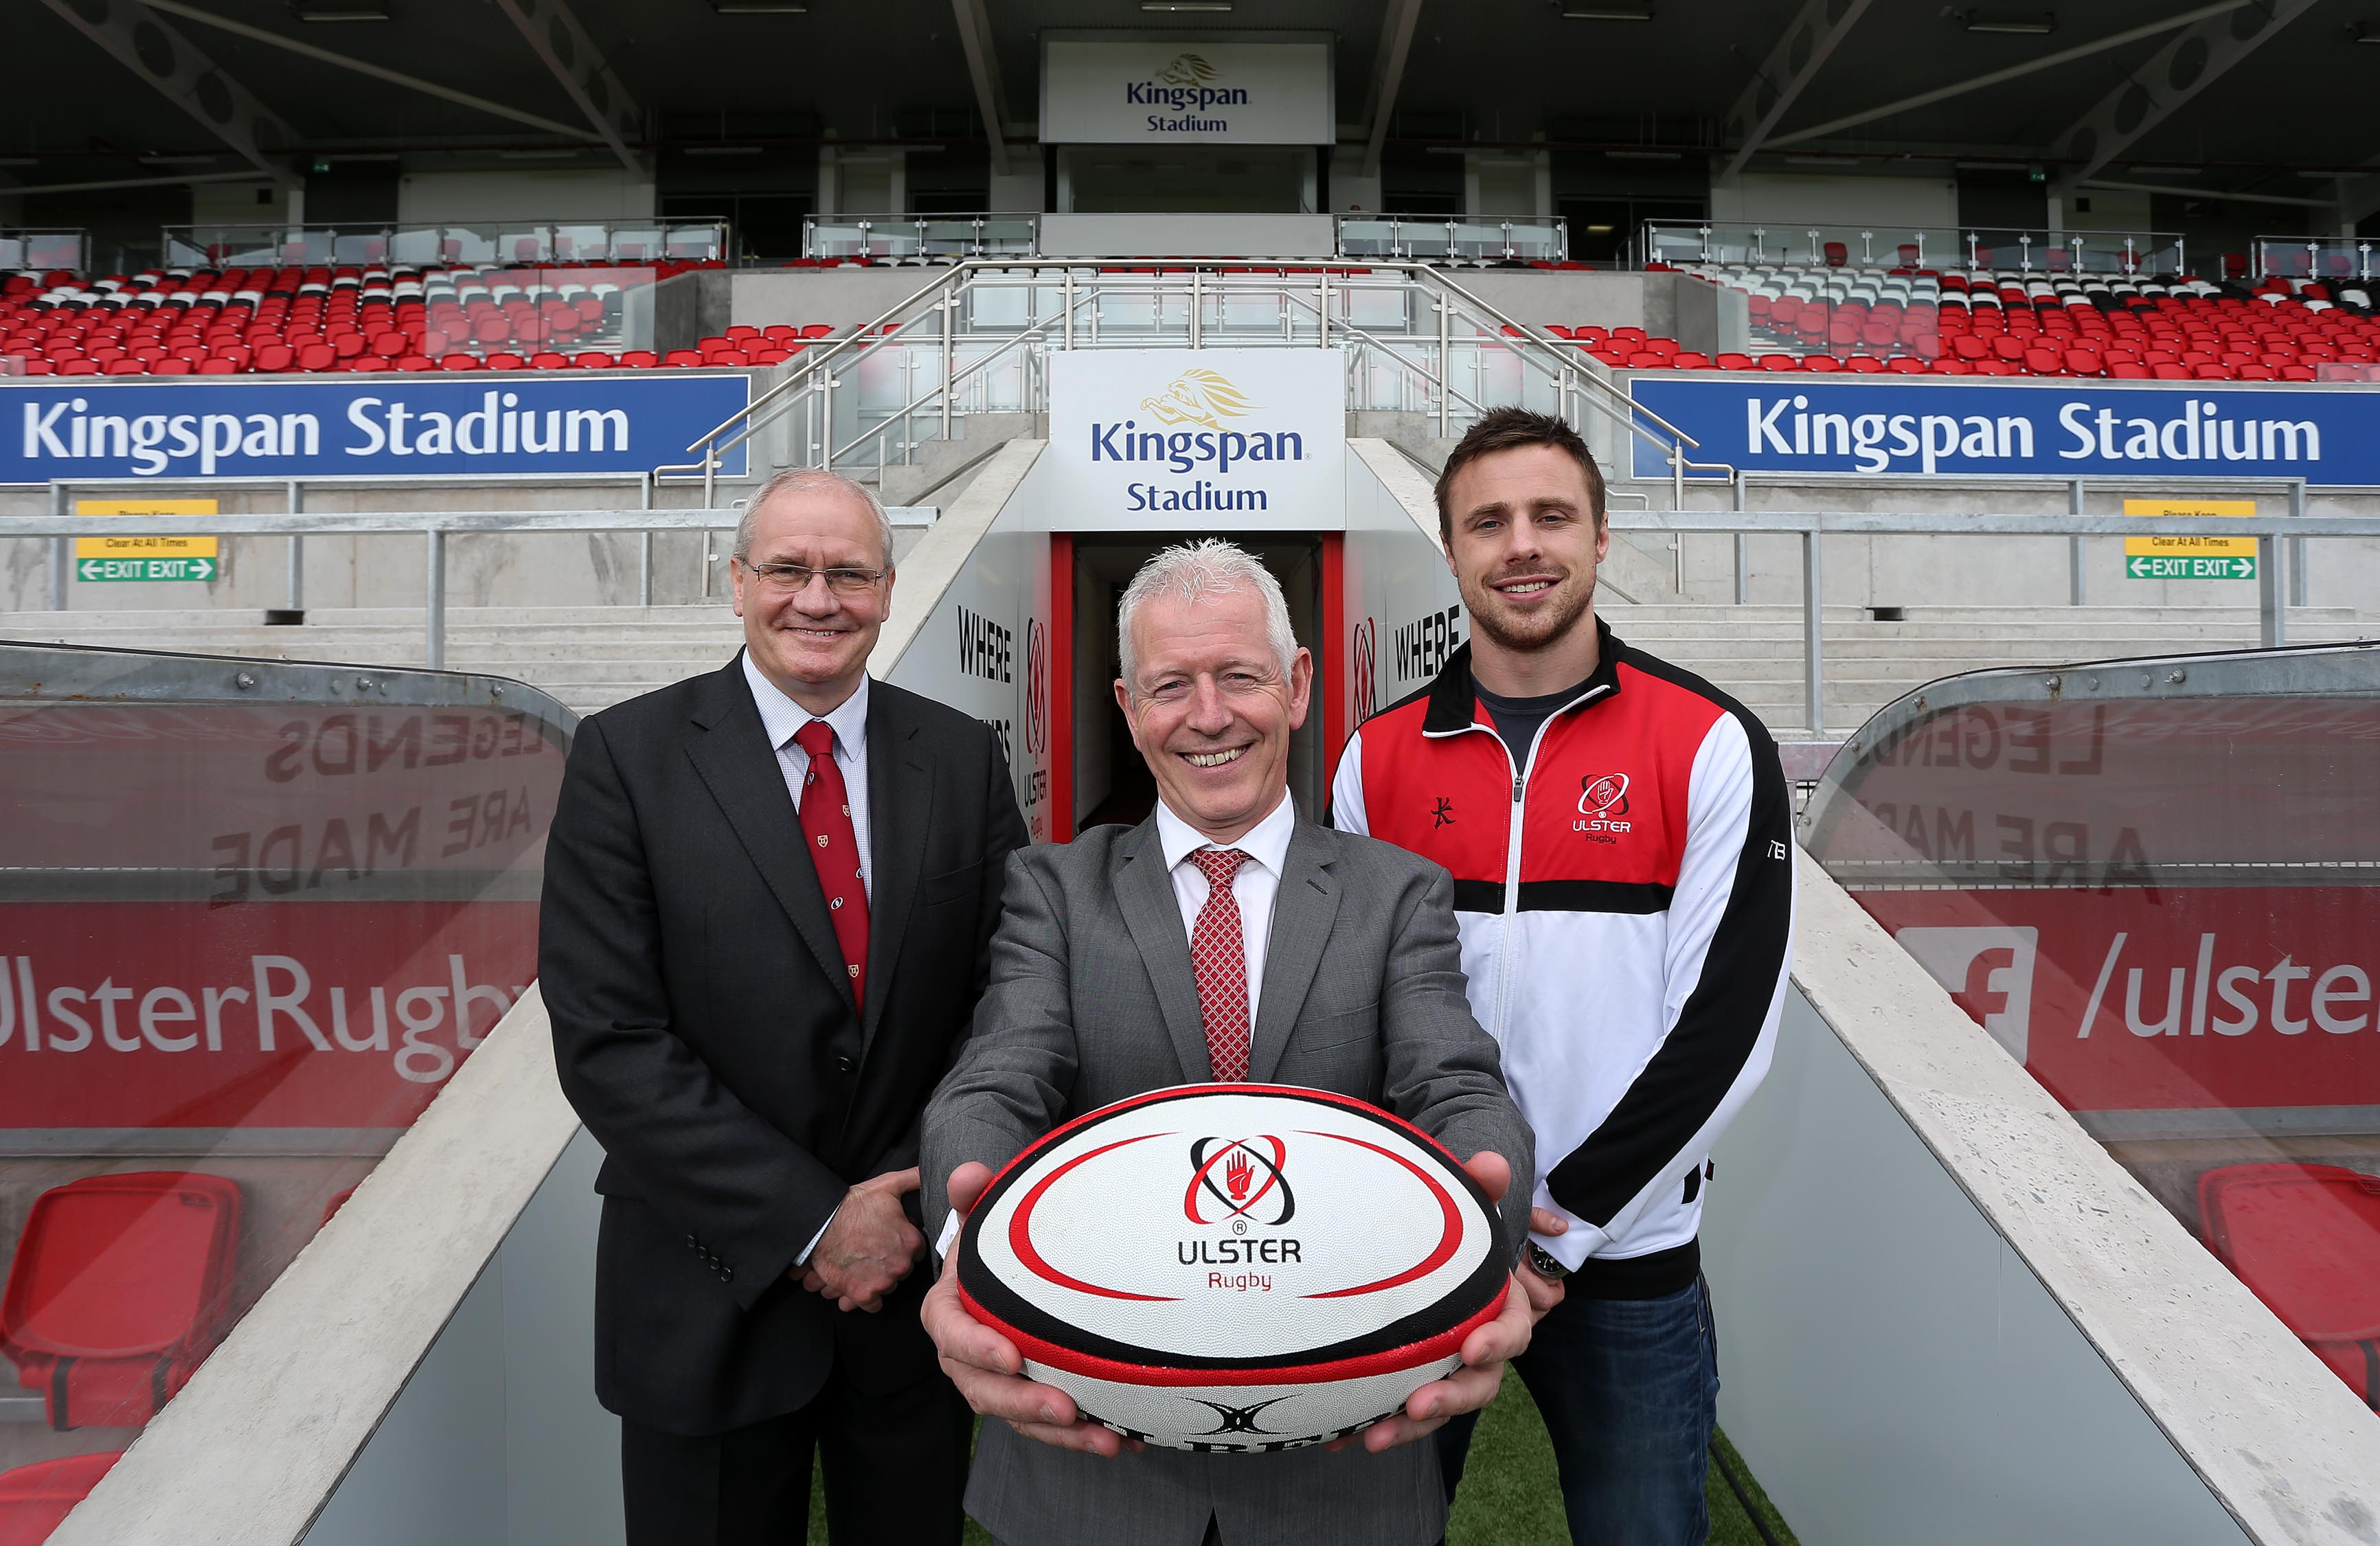 Ulster Rugby agrees stadium naming rights deal with Kingspan